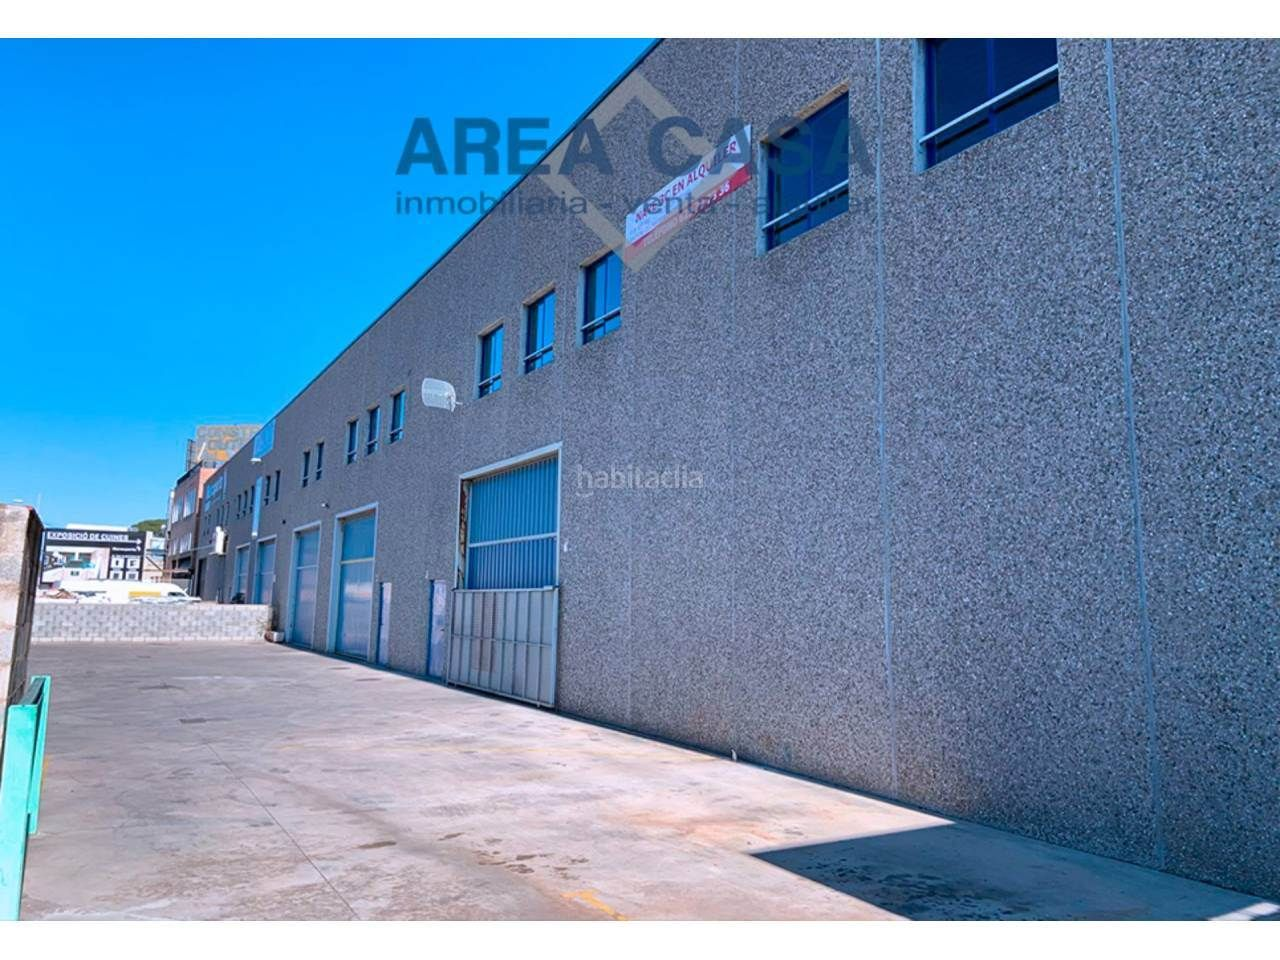 Rent Industrial building in Riera Alta. Nave industrial en  santa coloma, 990m2, reciente construcción